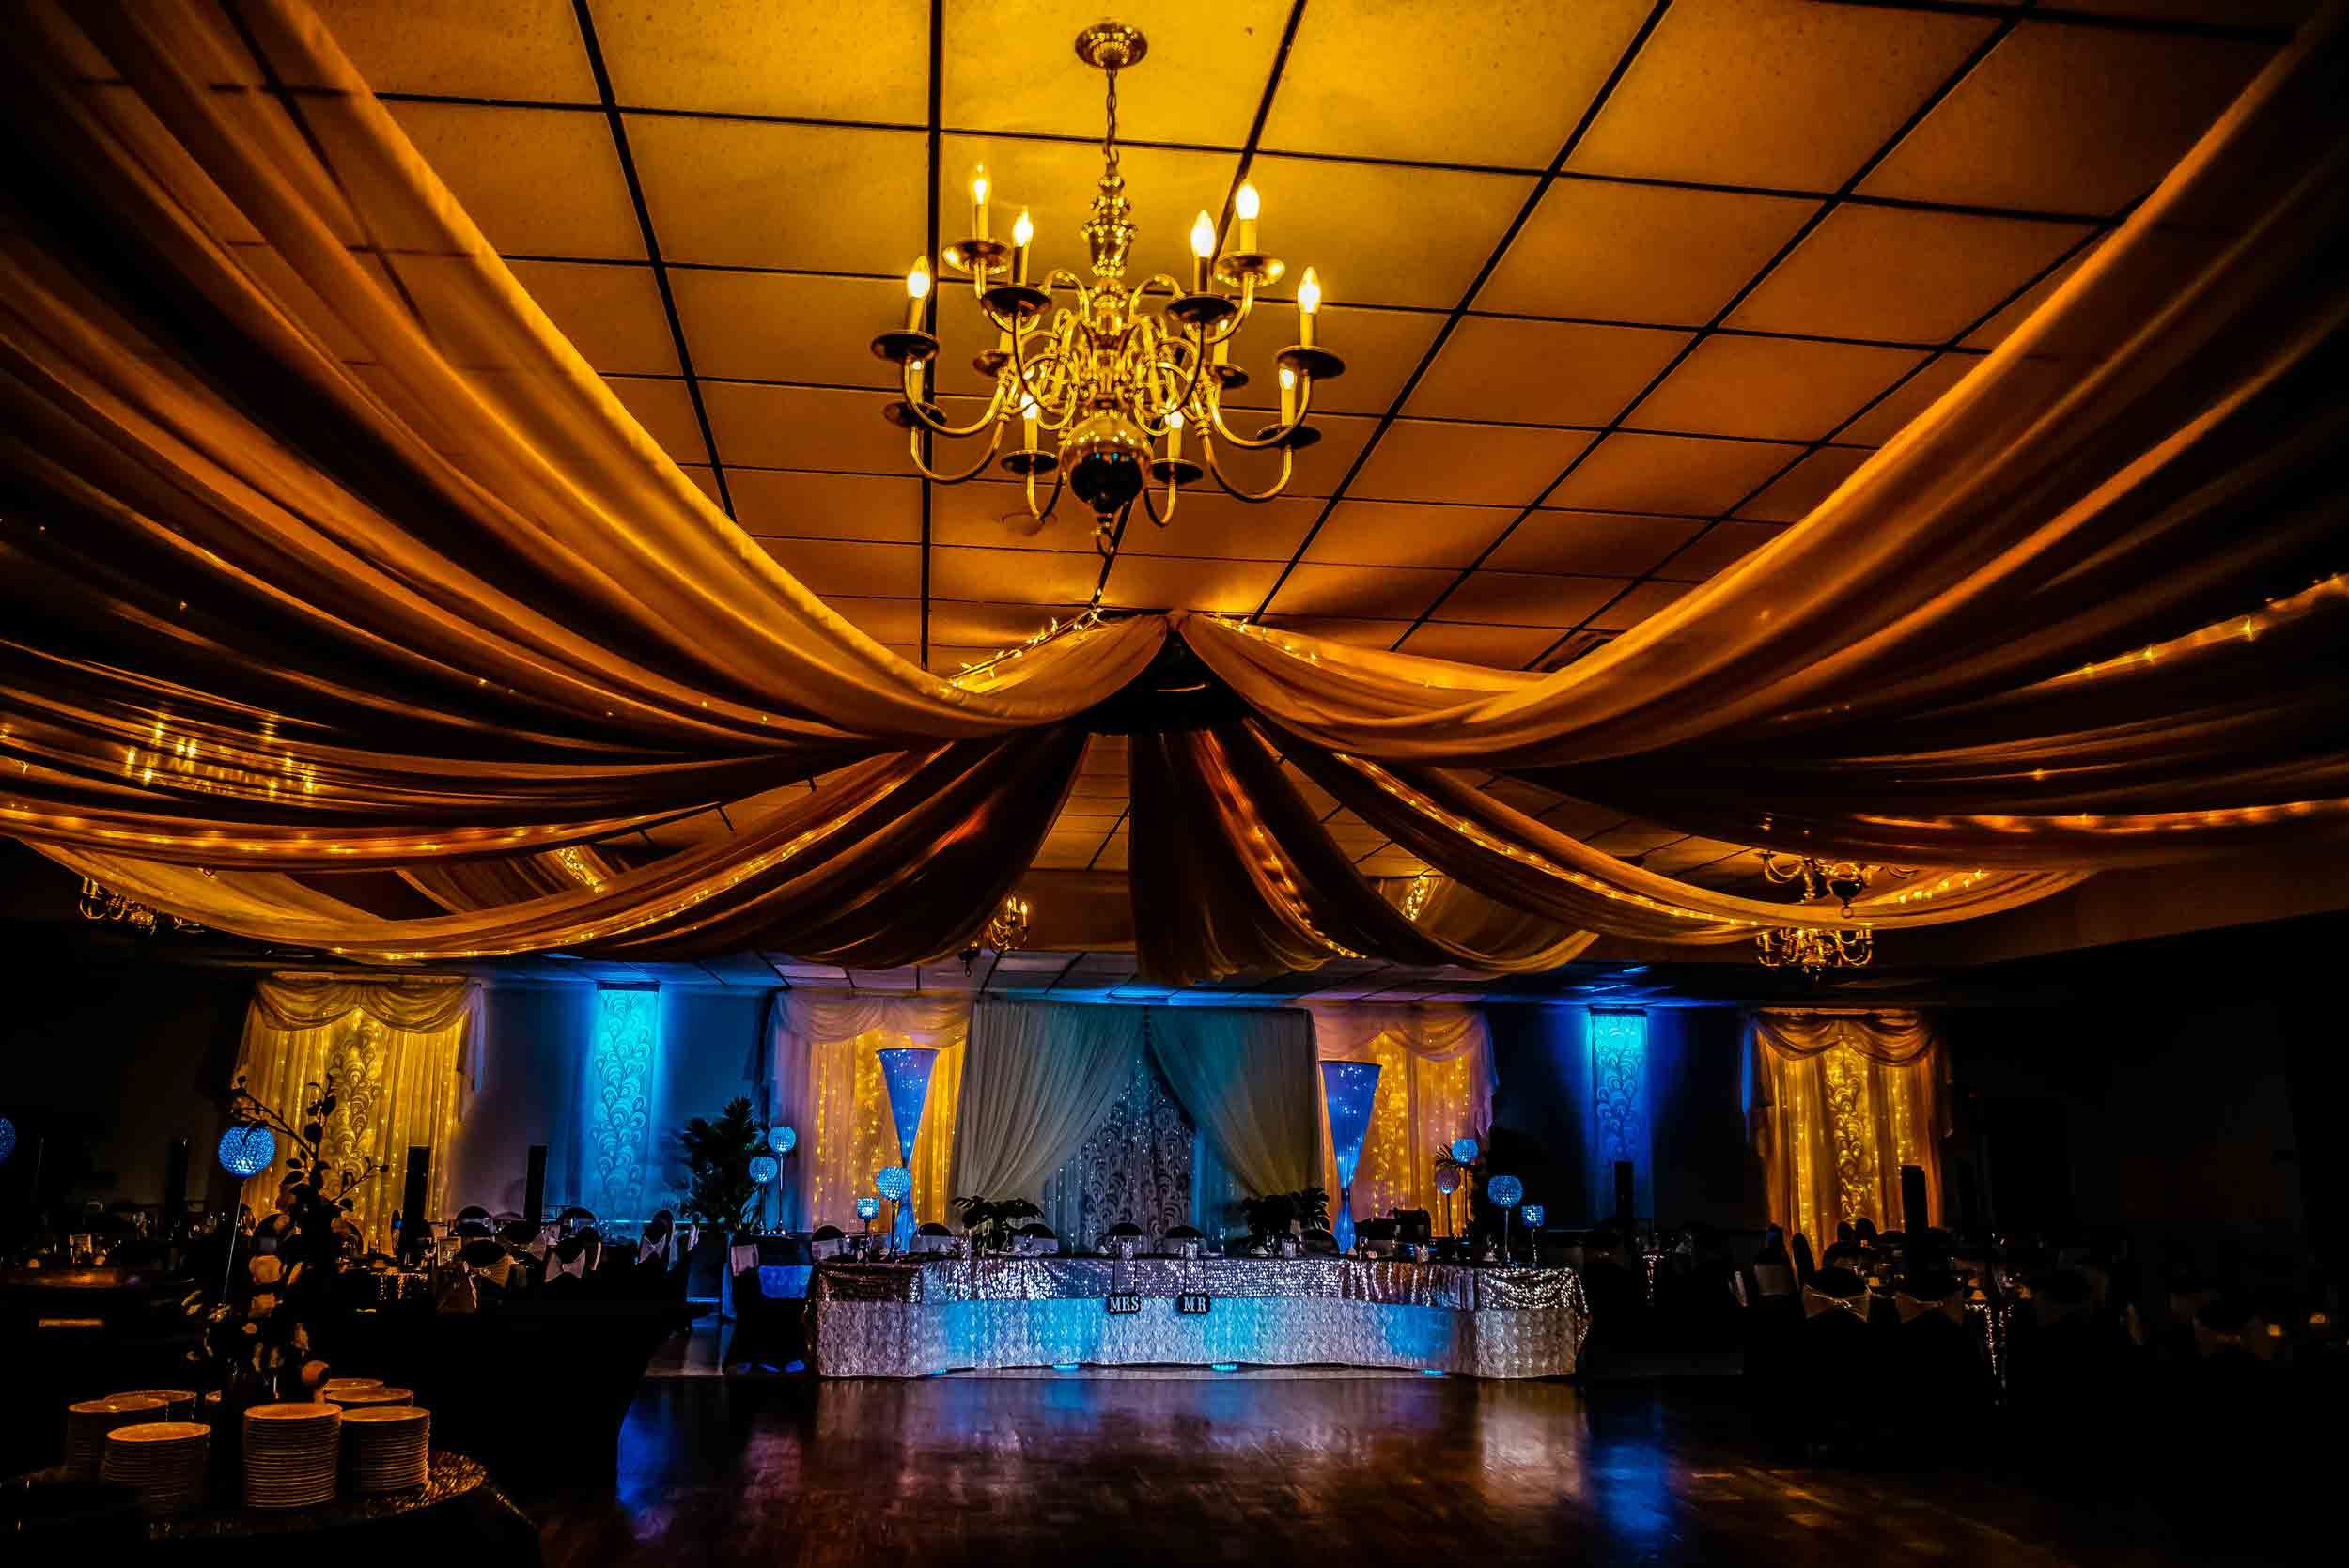 We offer full event planning/coordination and decoration services!